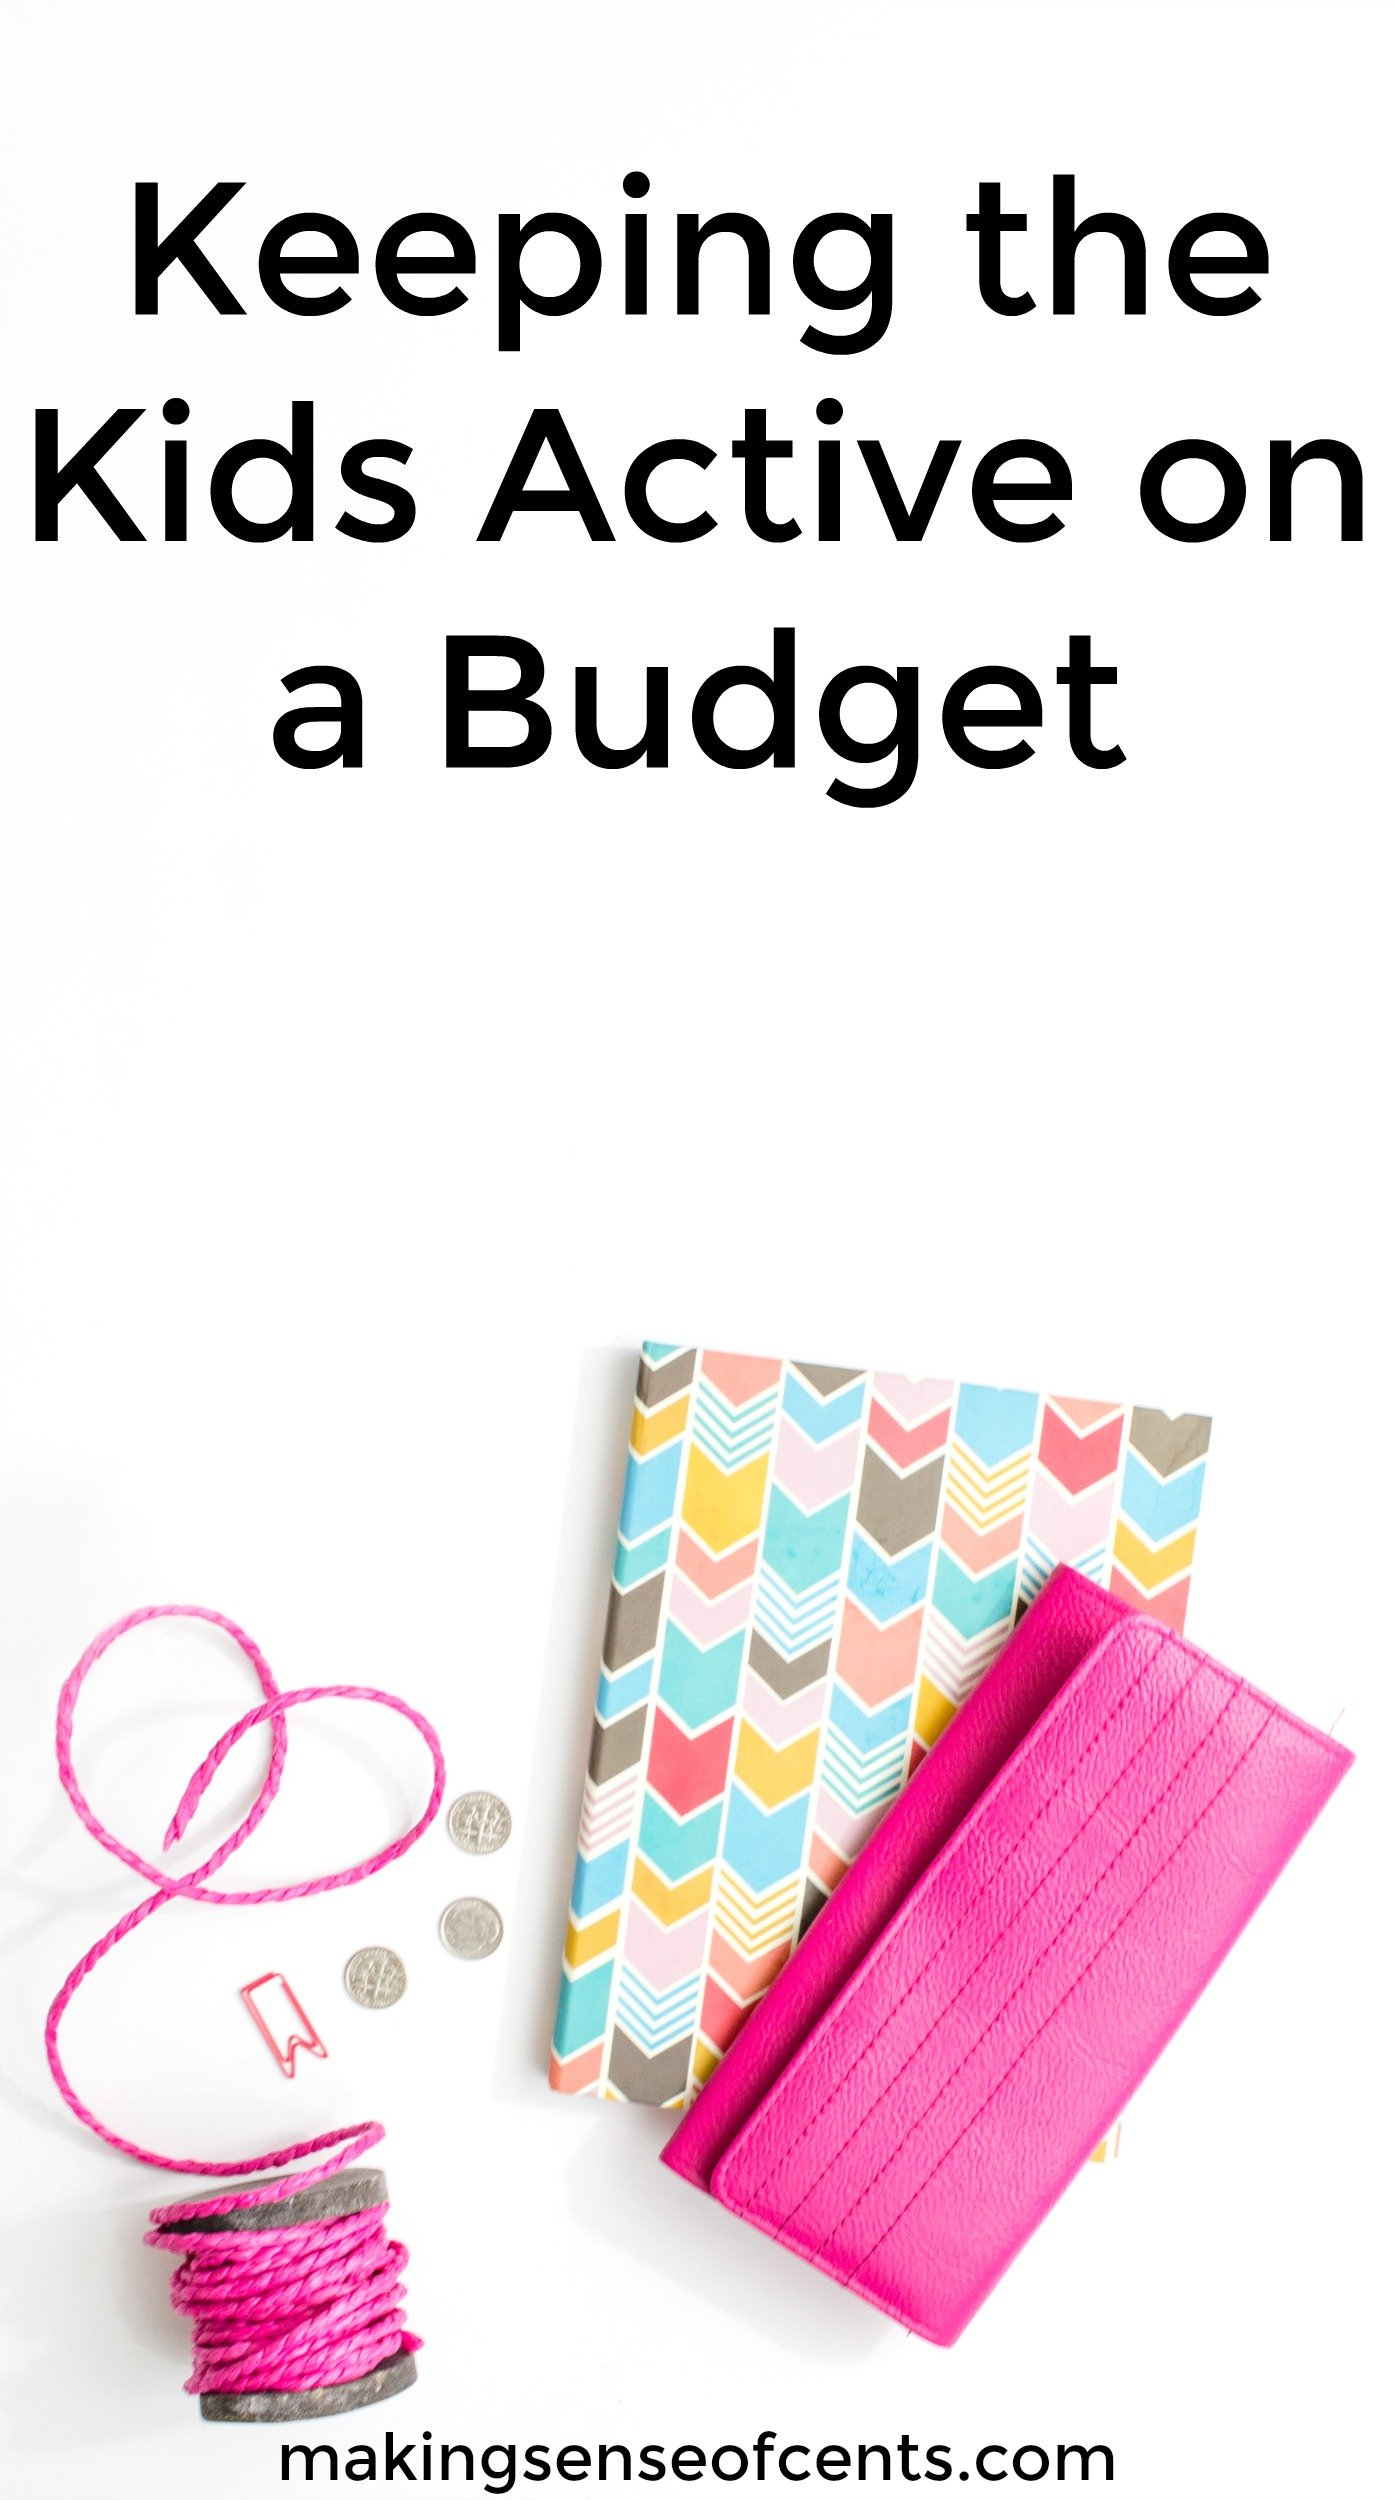 Find out how to keep your kids active on a tight budget. This is a great list!